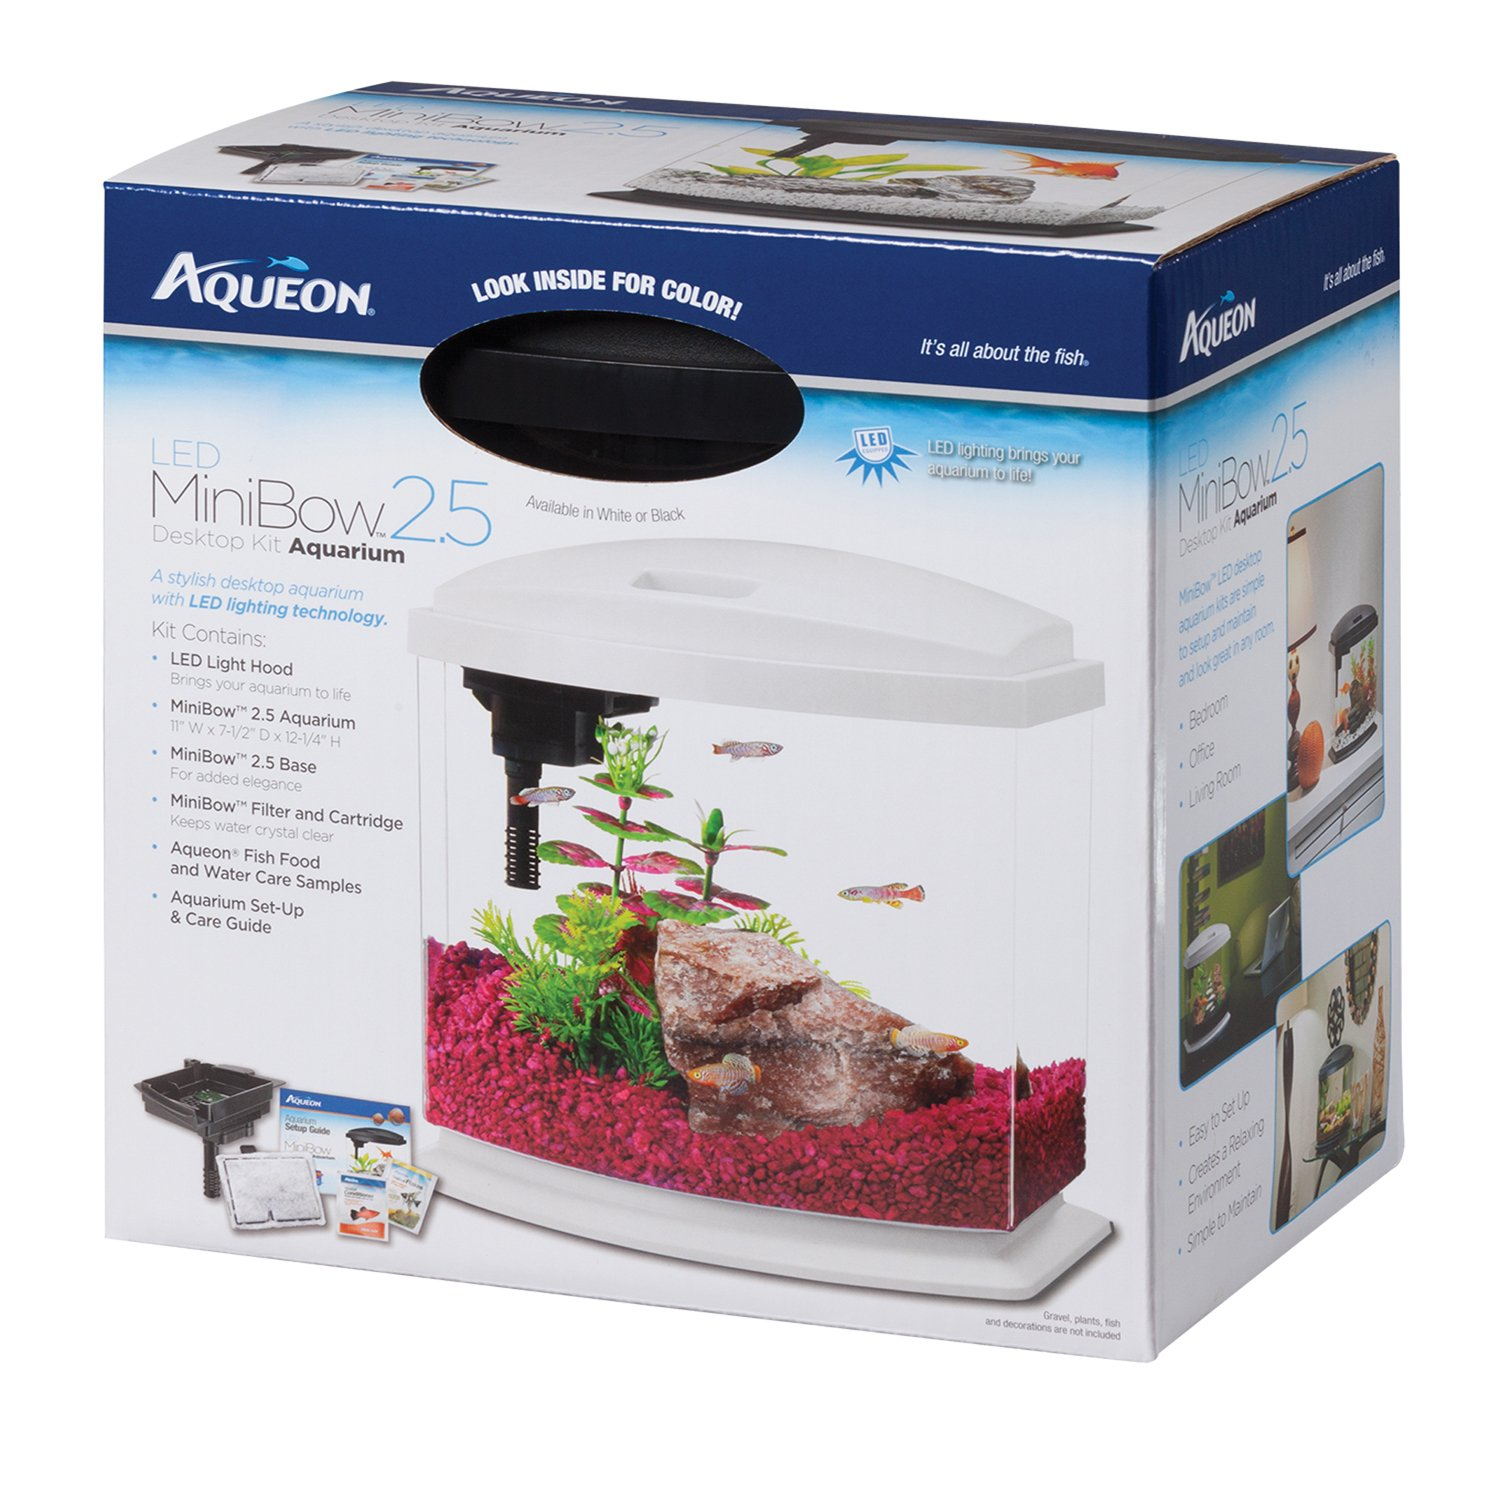 Aqueon bettabow led desktop fish aquarium kit petco for Betta fish tanks petco